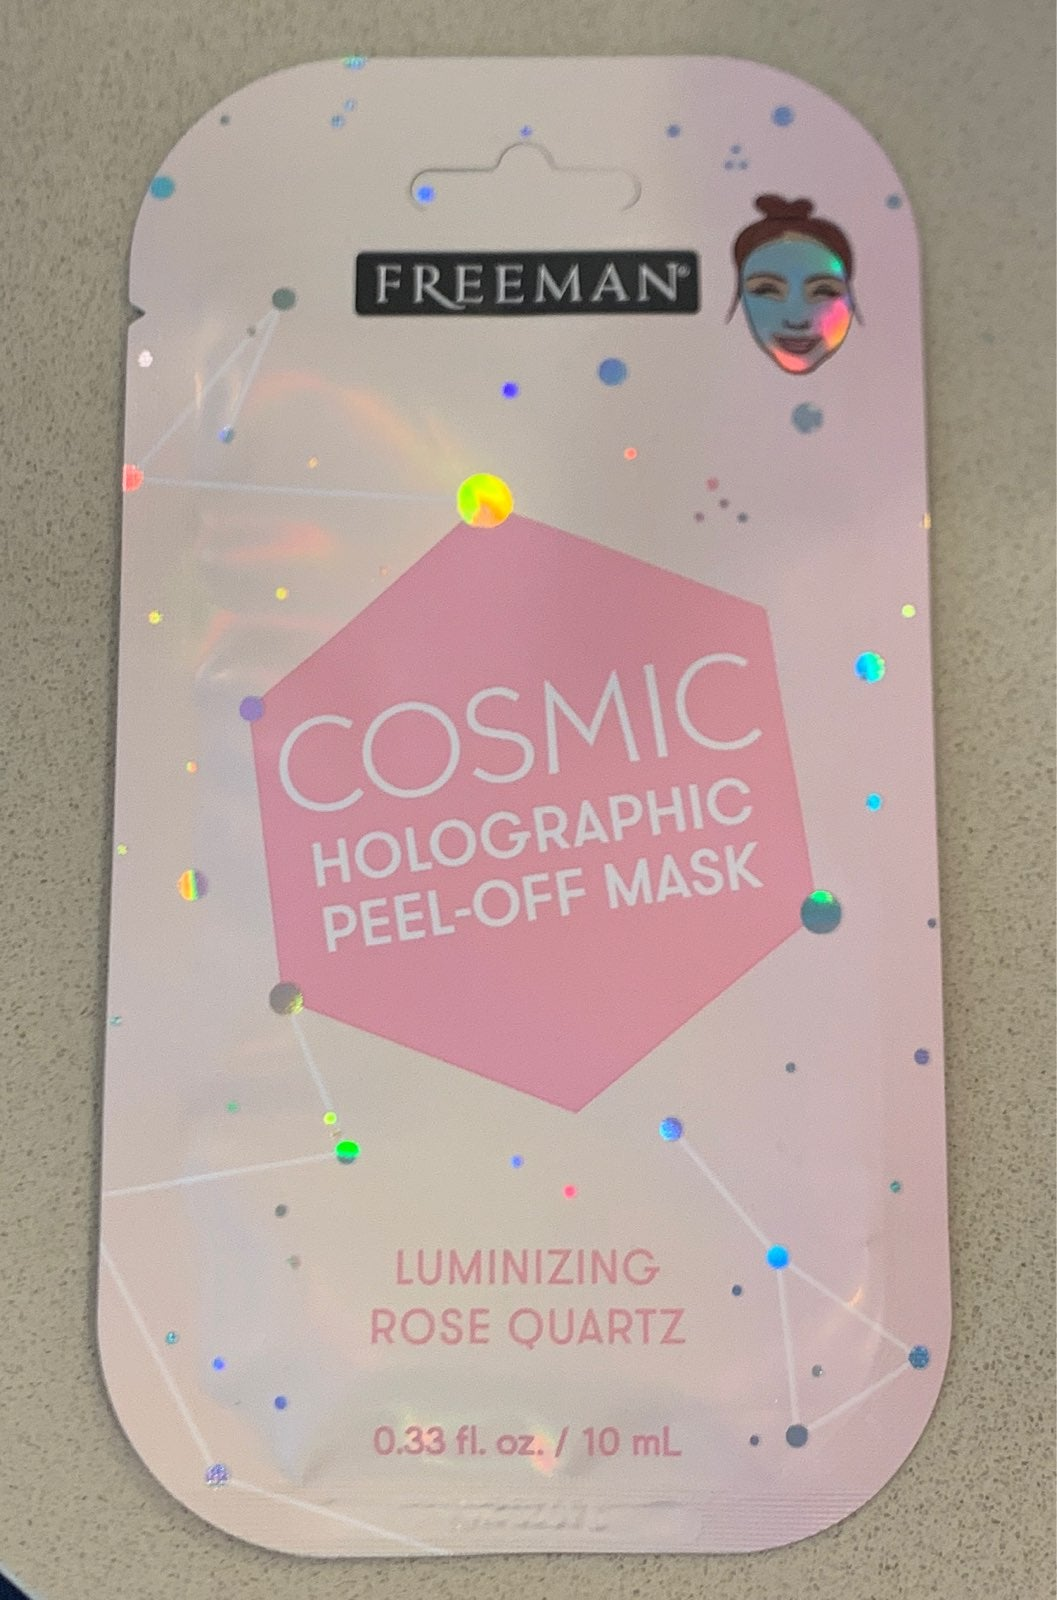 Cosmic Holographic Peel-Off Mask